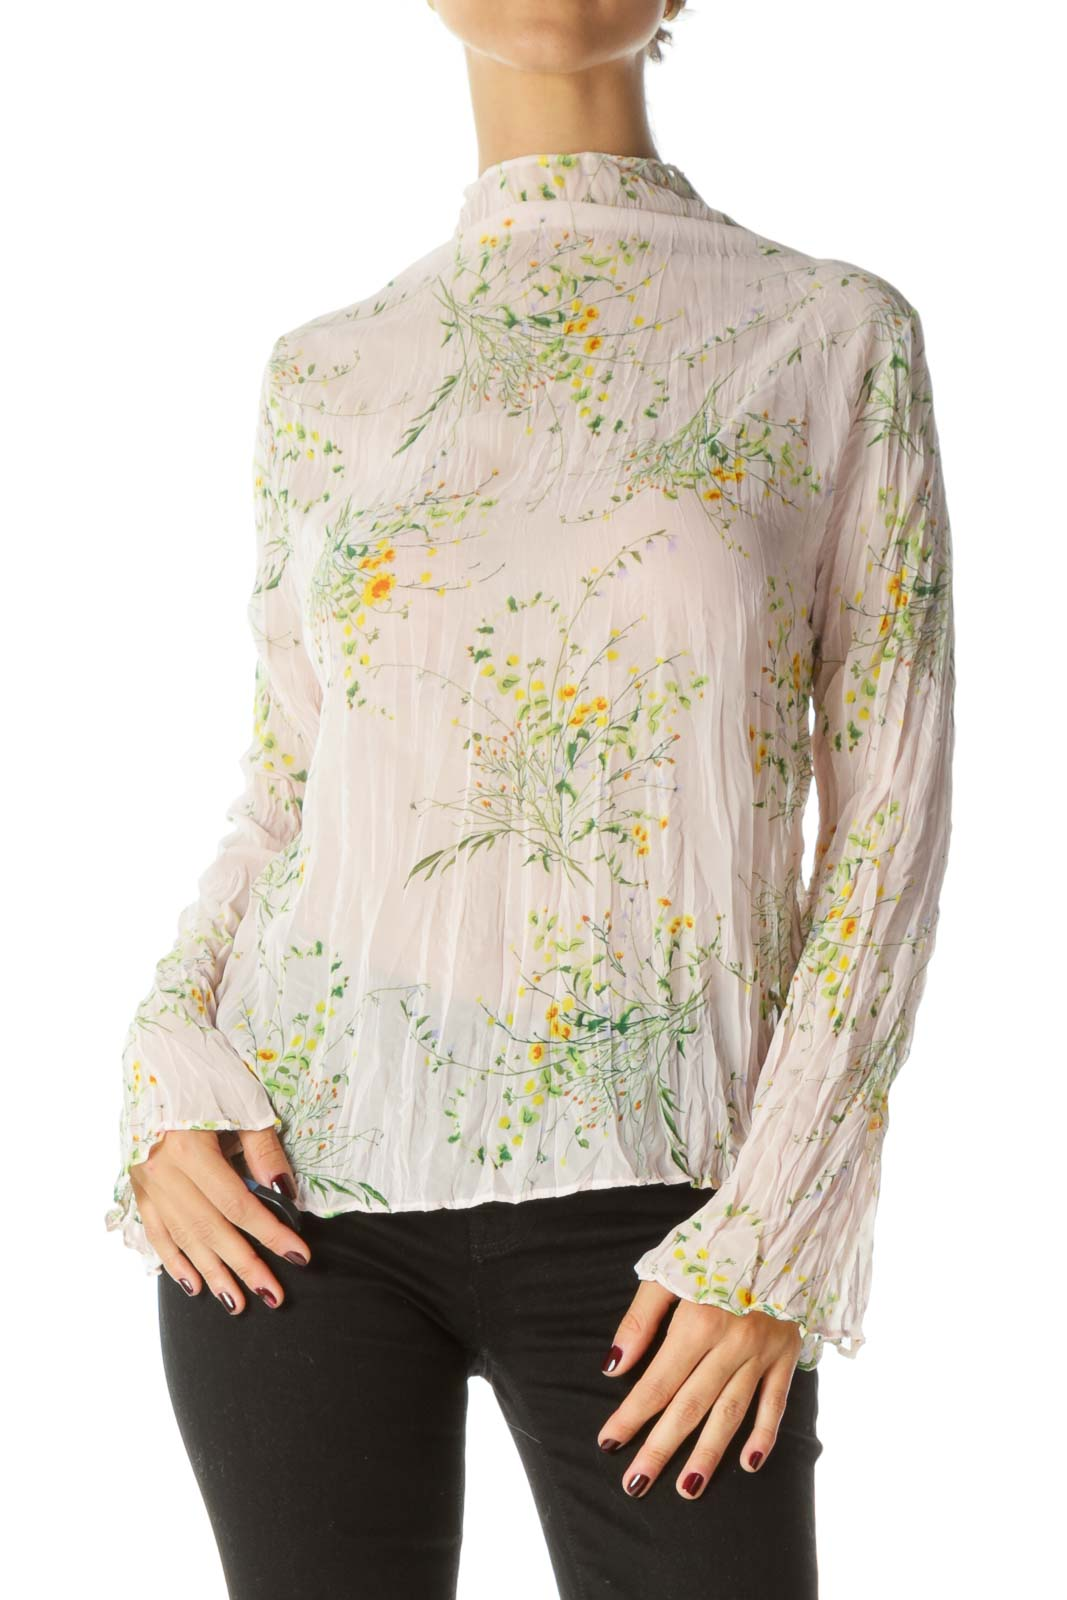 Pink Green & Yellow Floral Print Translucent High-Neck Long-Sleeve Blouse Front